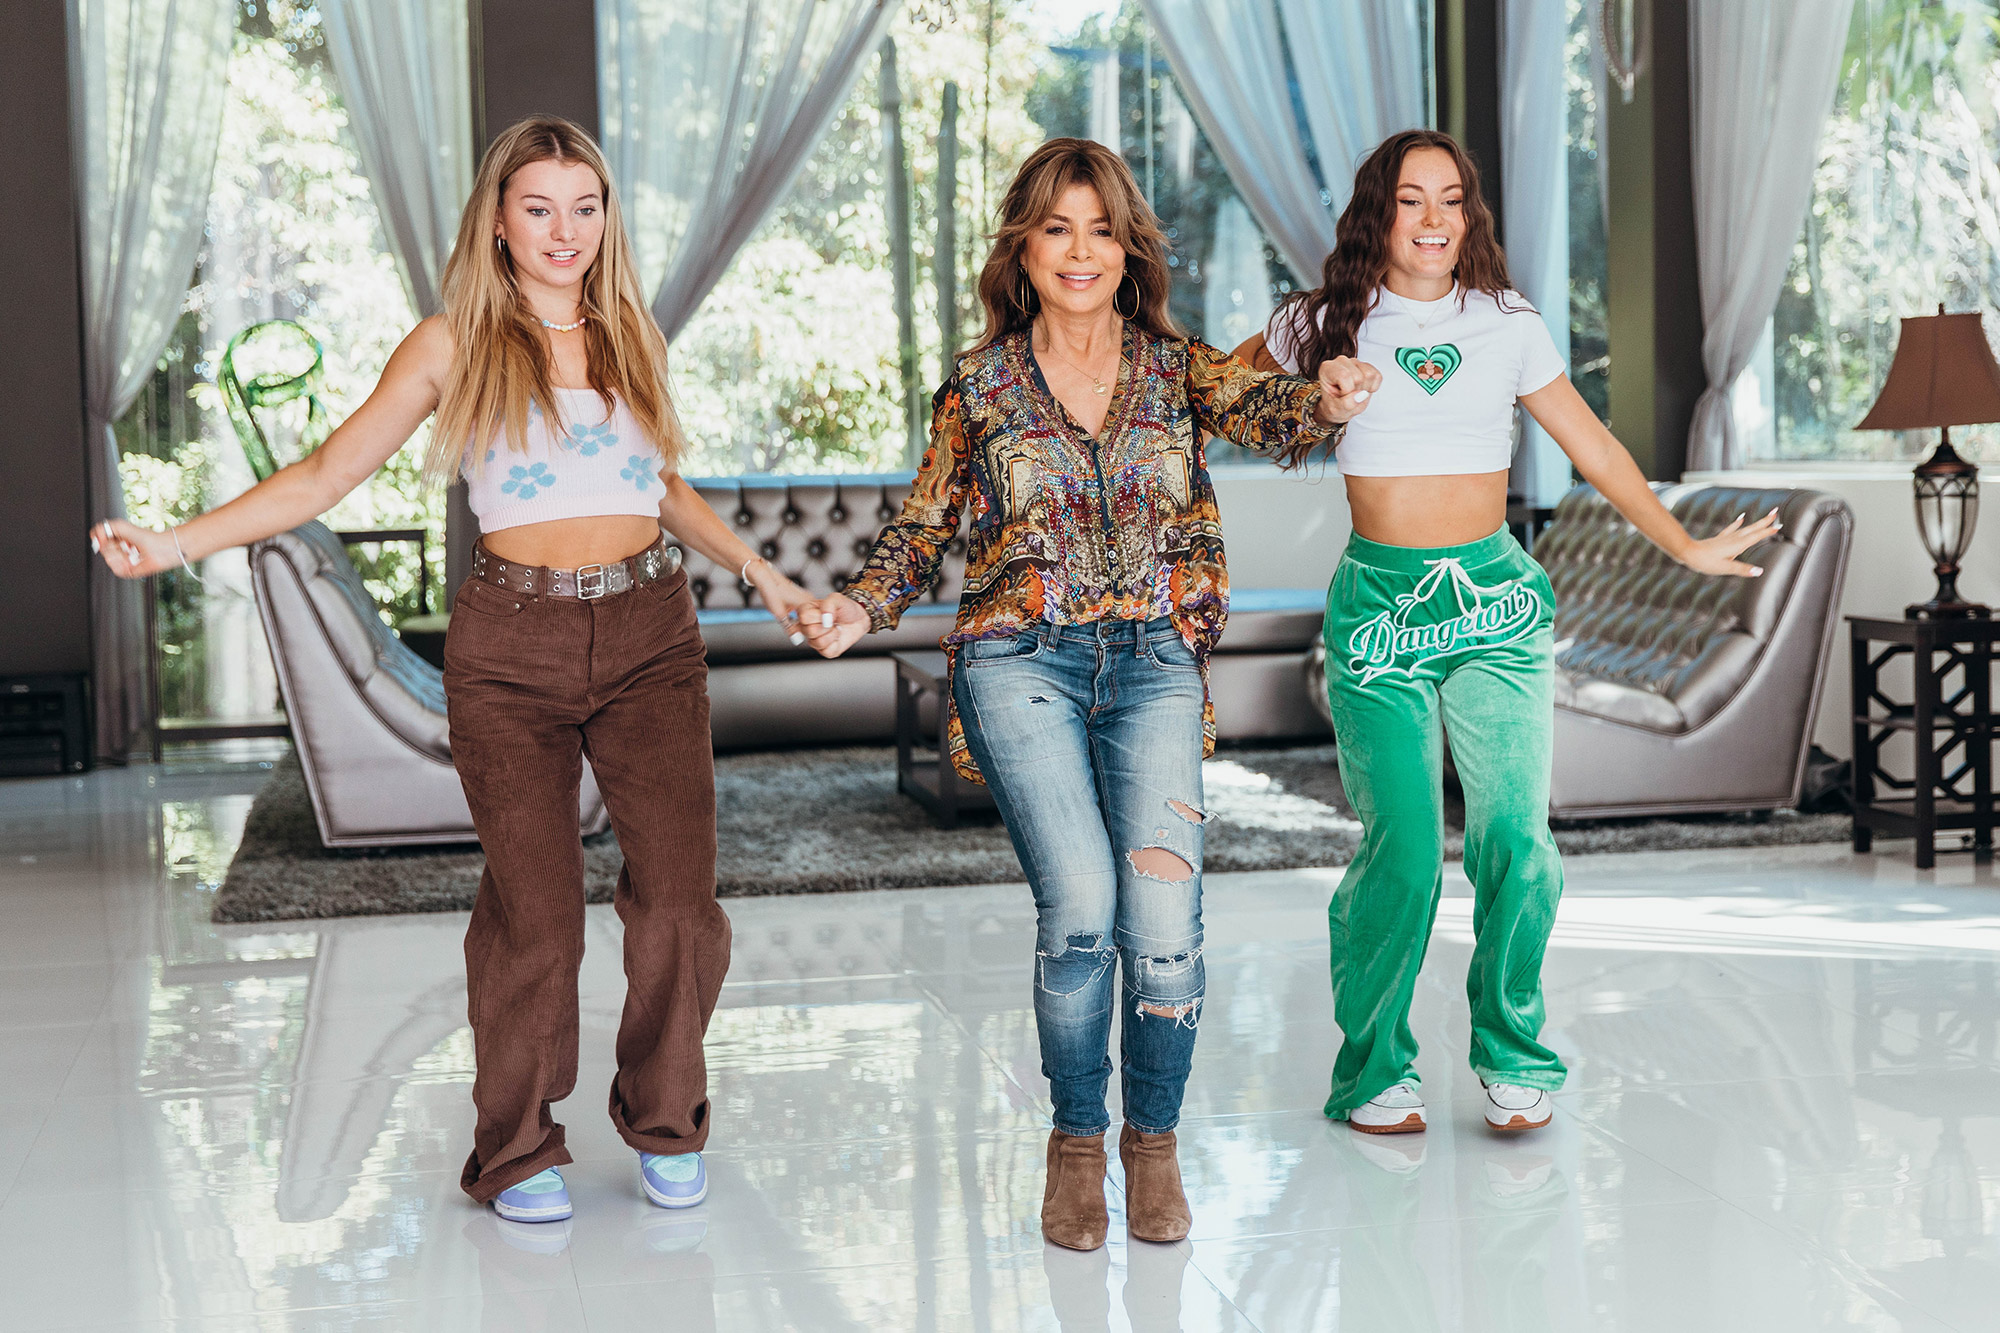 Paula Abdul returned to @TheClubhouseBH, a Beverly Hills content mansion operated by Clubhouse Media Group to join the @DanceDomeLA squad and record a few dances for their collective TikTok and Instagram channels.